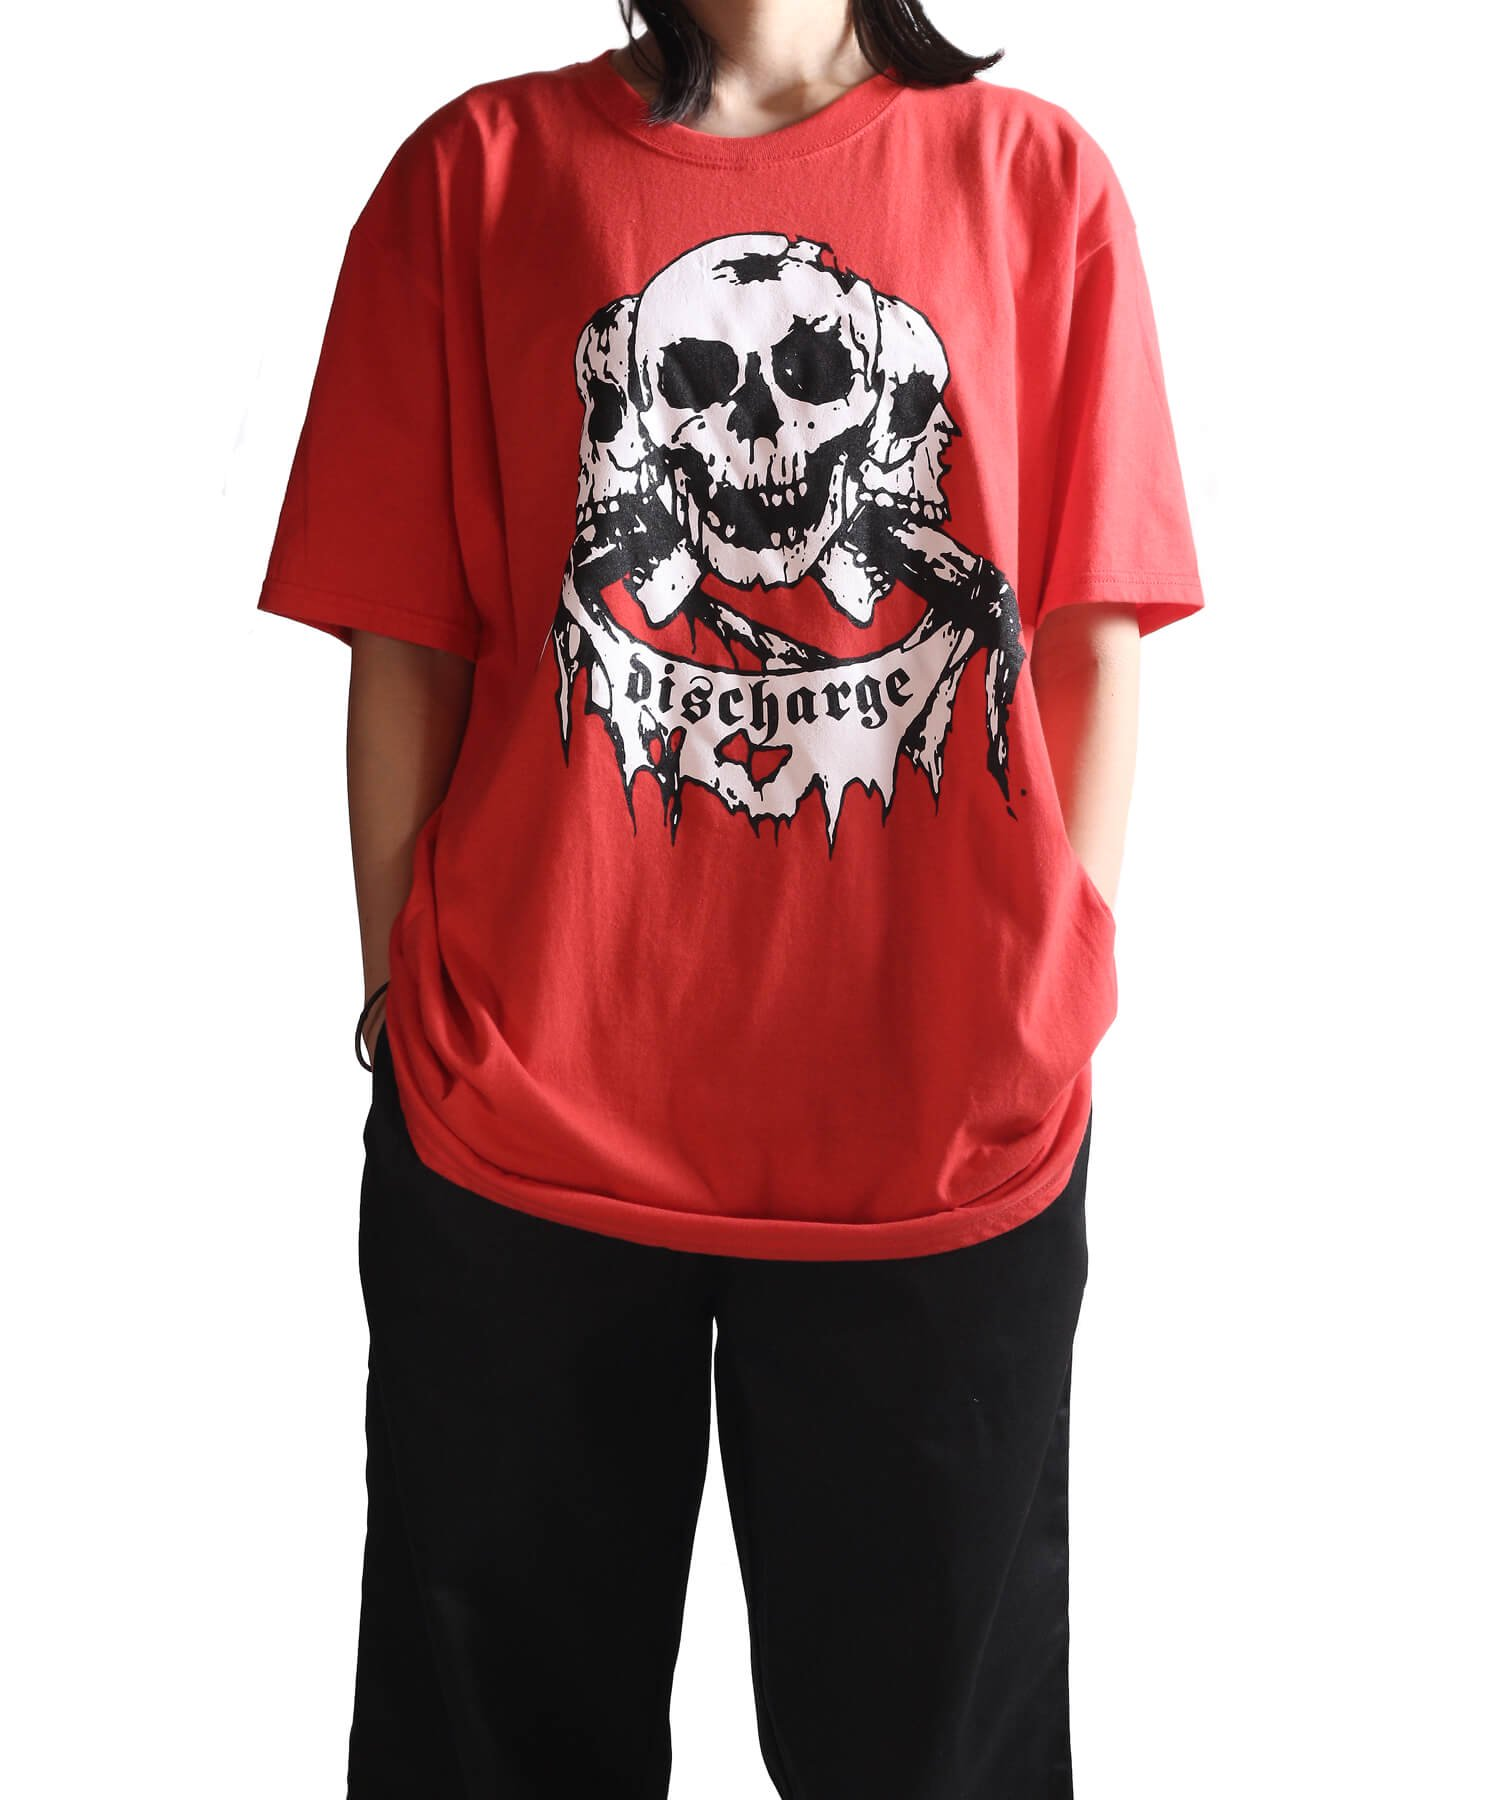 Official Artist Goods / バンドTなど |DISCHARGE / ディスチャージ:BORN TO DIE T-SHIRT (BLACK/RED) 商品画像18